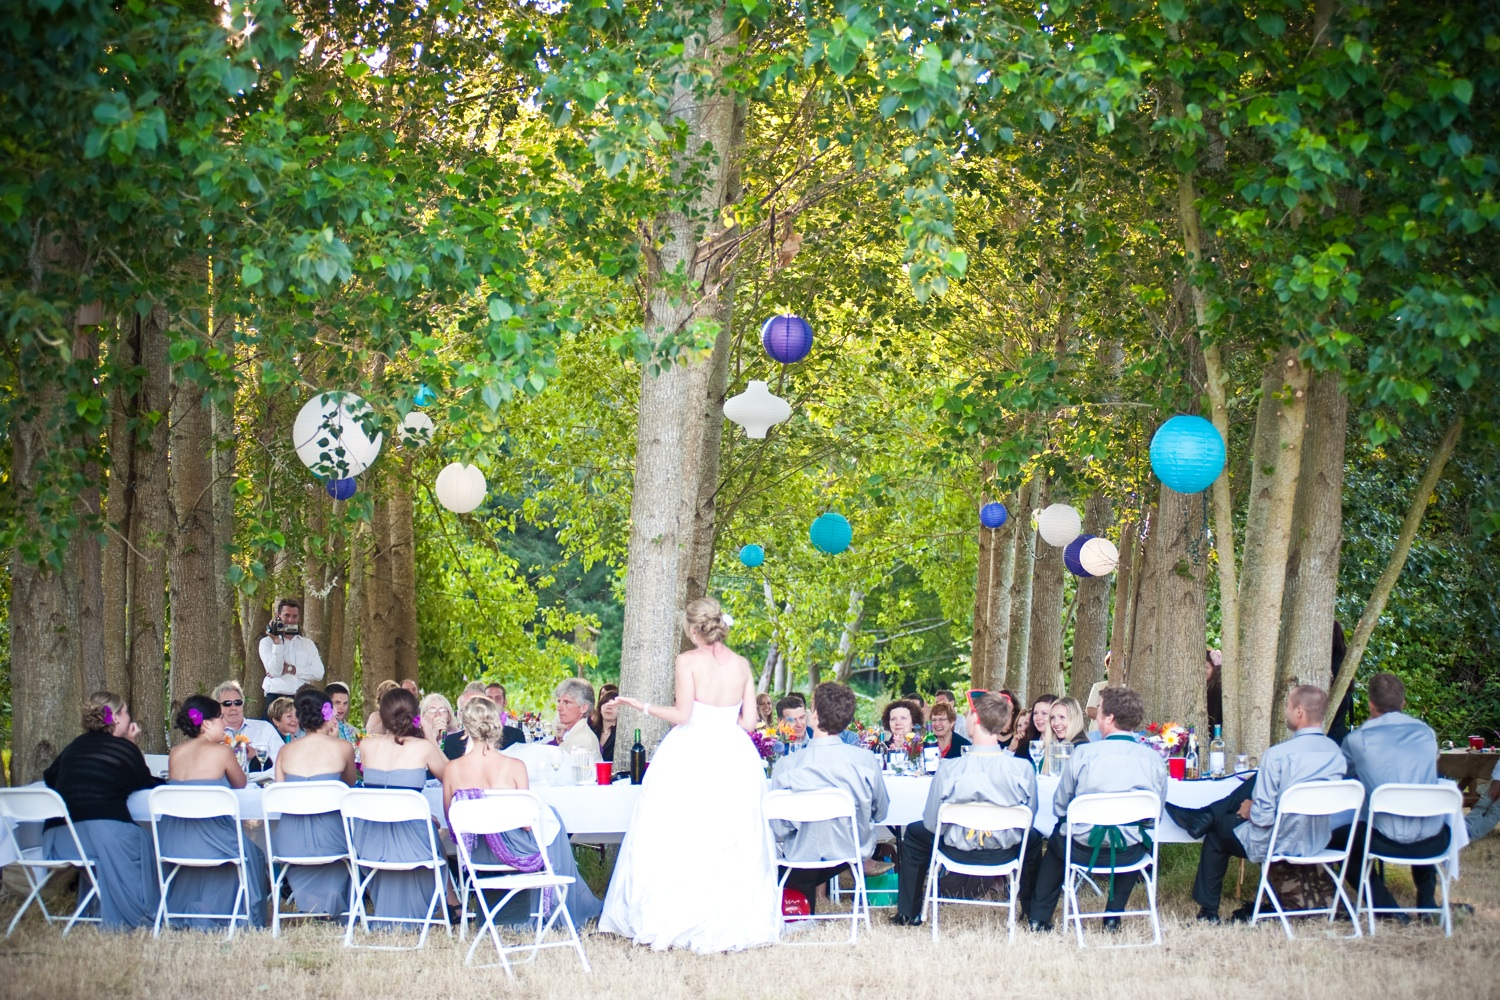 outdoor wedding backyard wedding wedding planning ideas